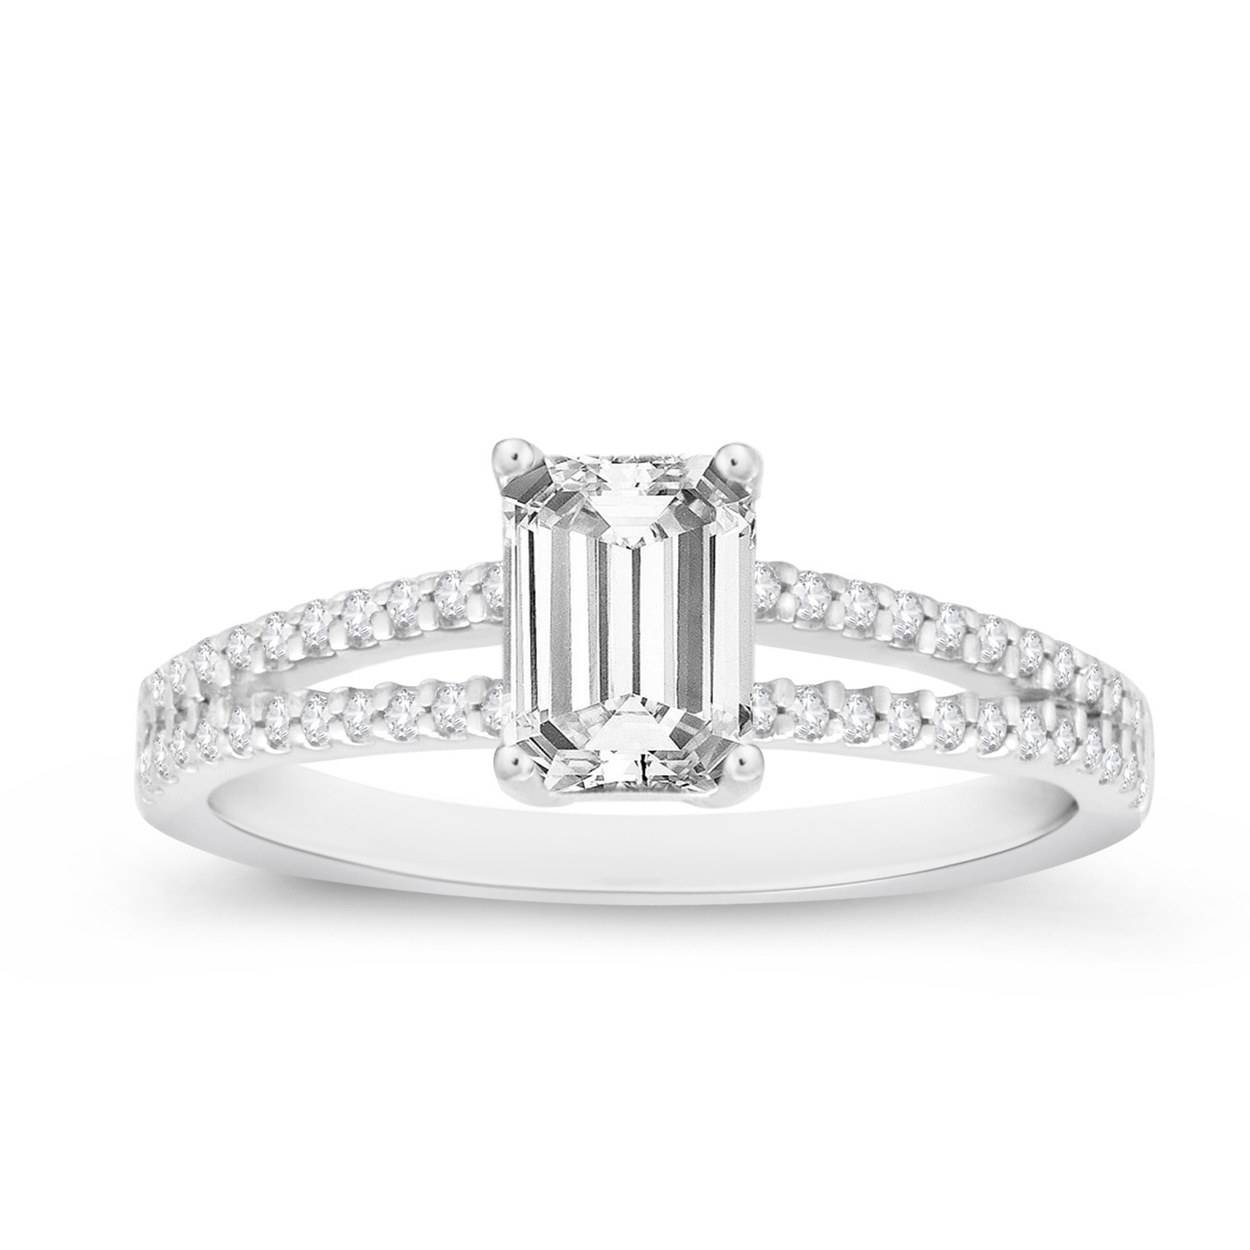 62 Diamond Engagement Rings Under $5,000 | Glamour Pertaining To Emerald Cut Engagement Rings Under  (View 3 of 15)